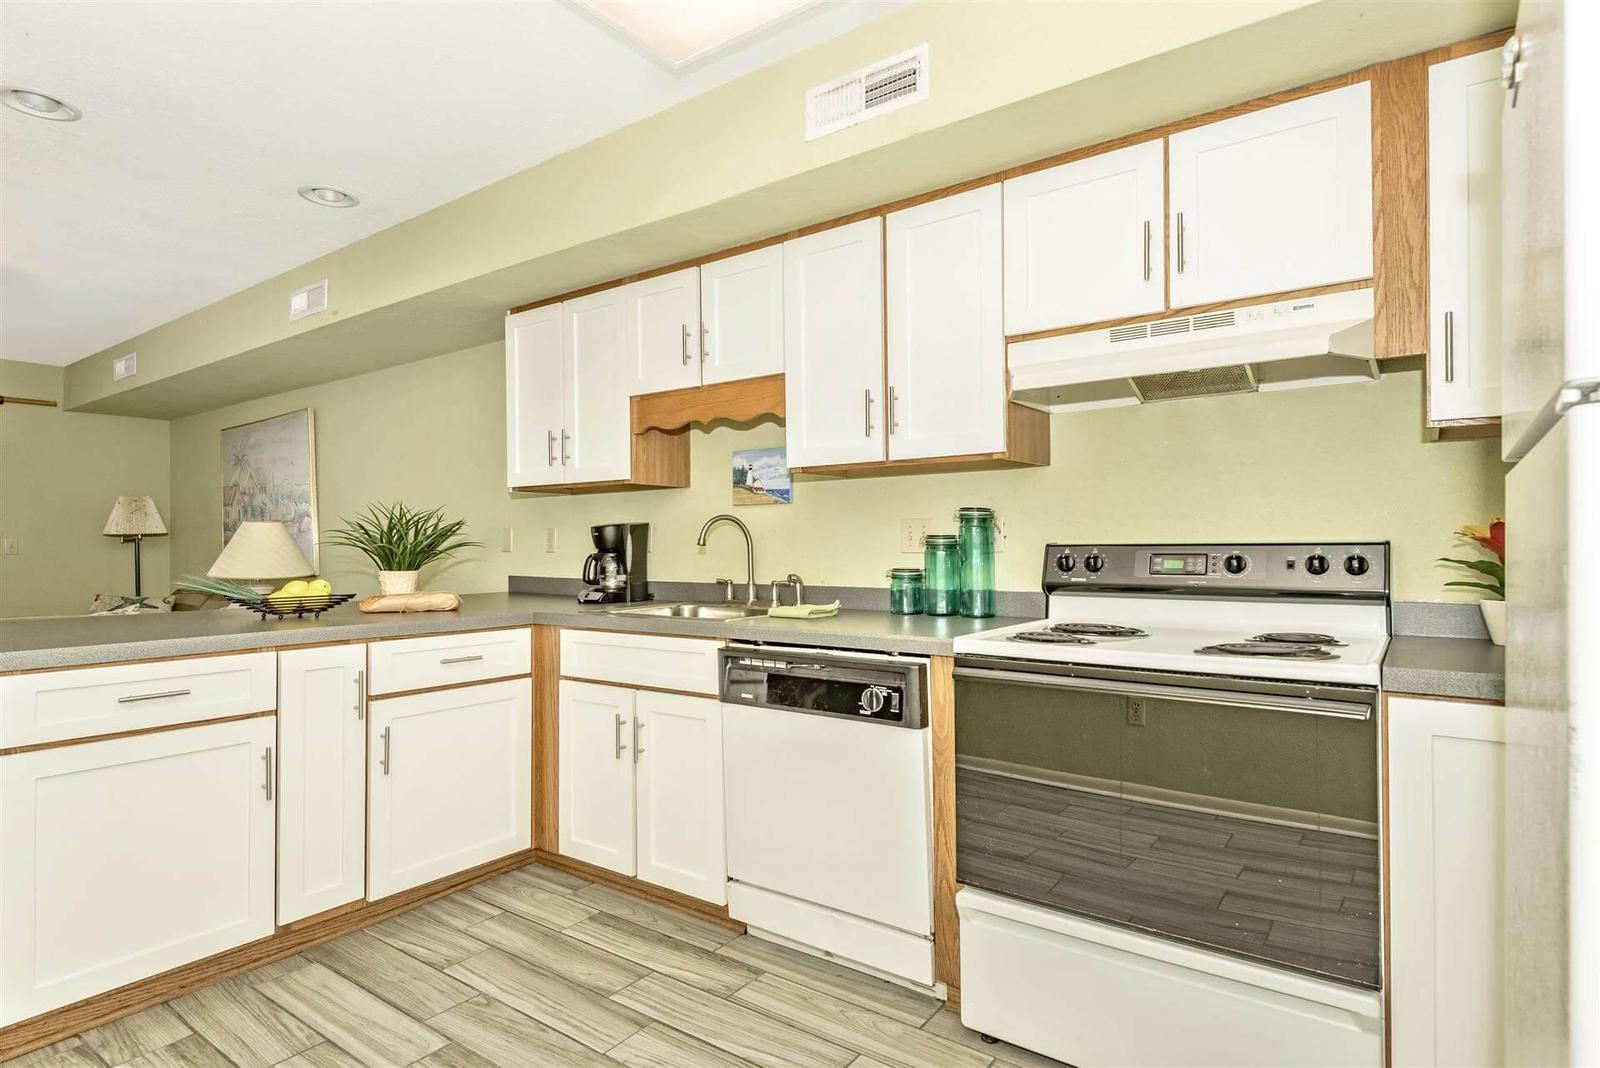 Spacious and clean kitchen